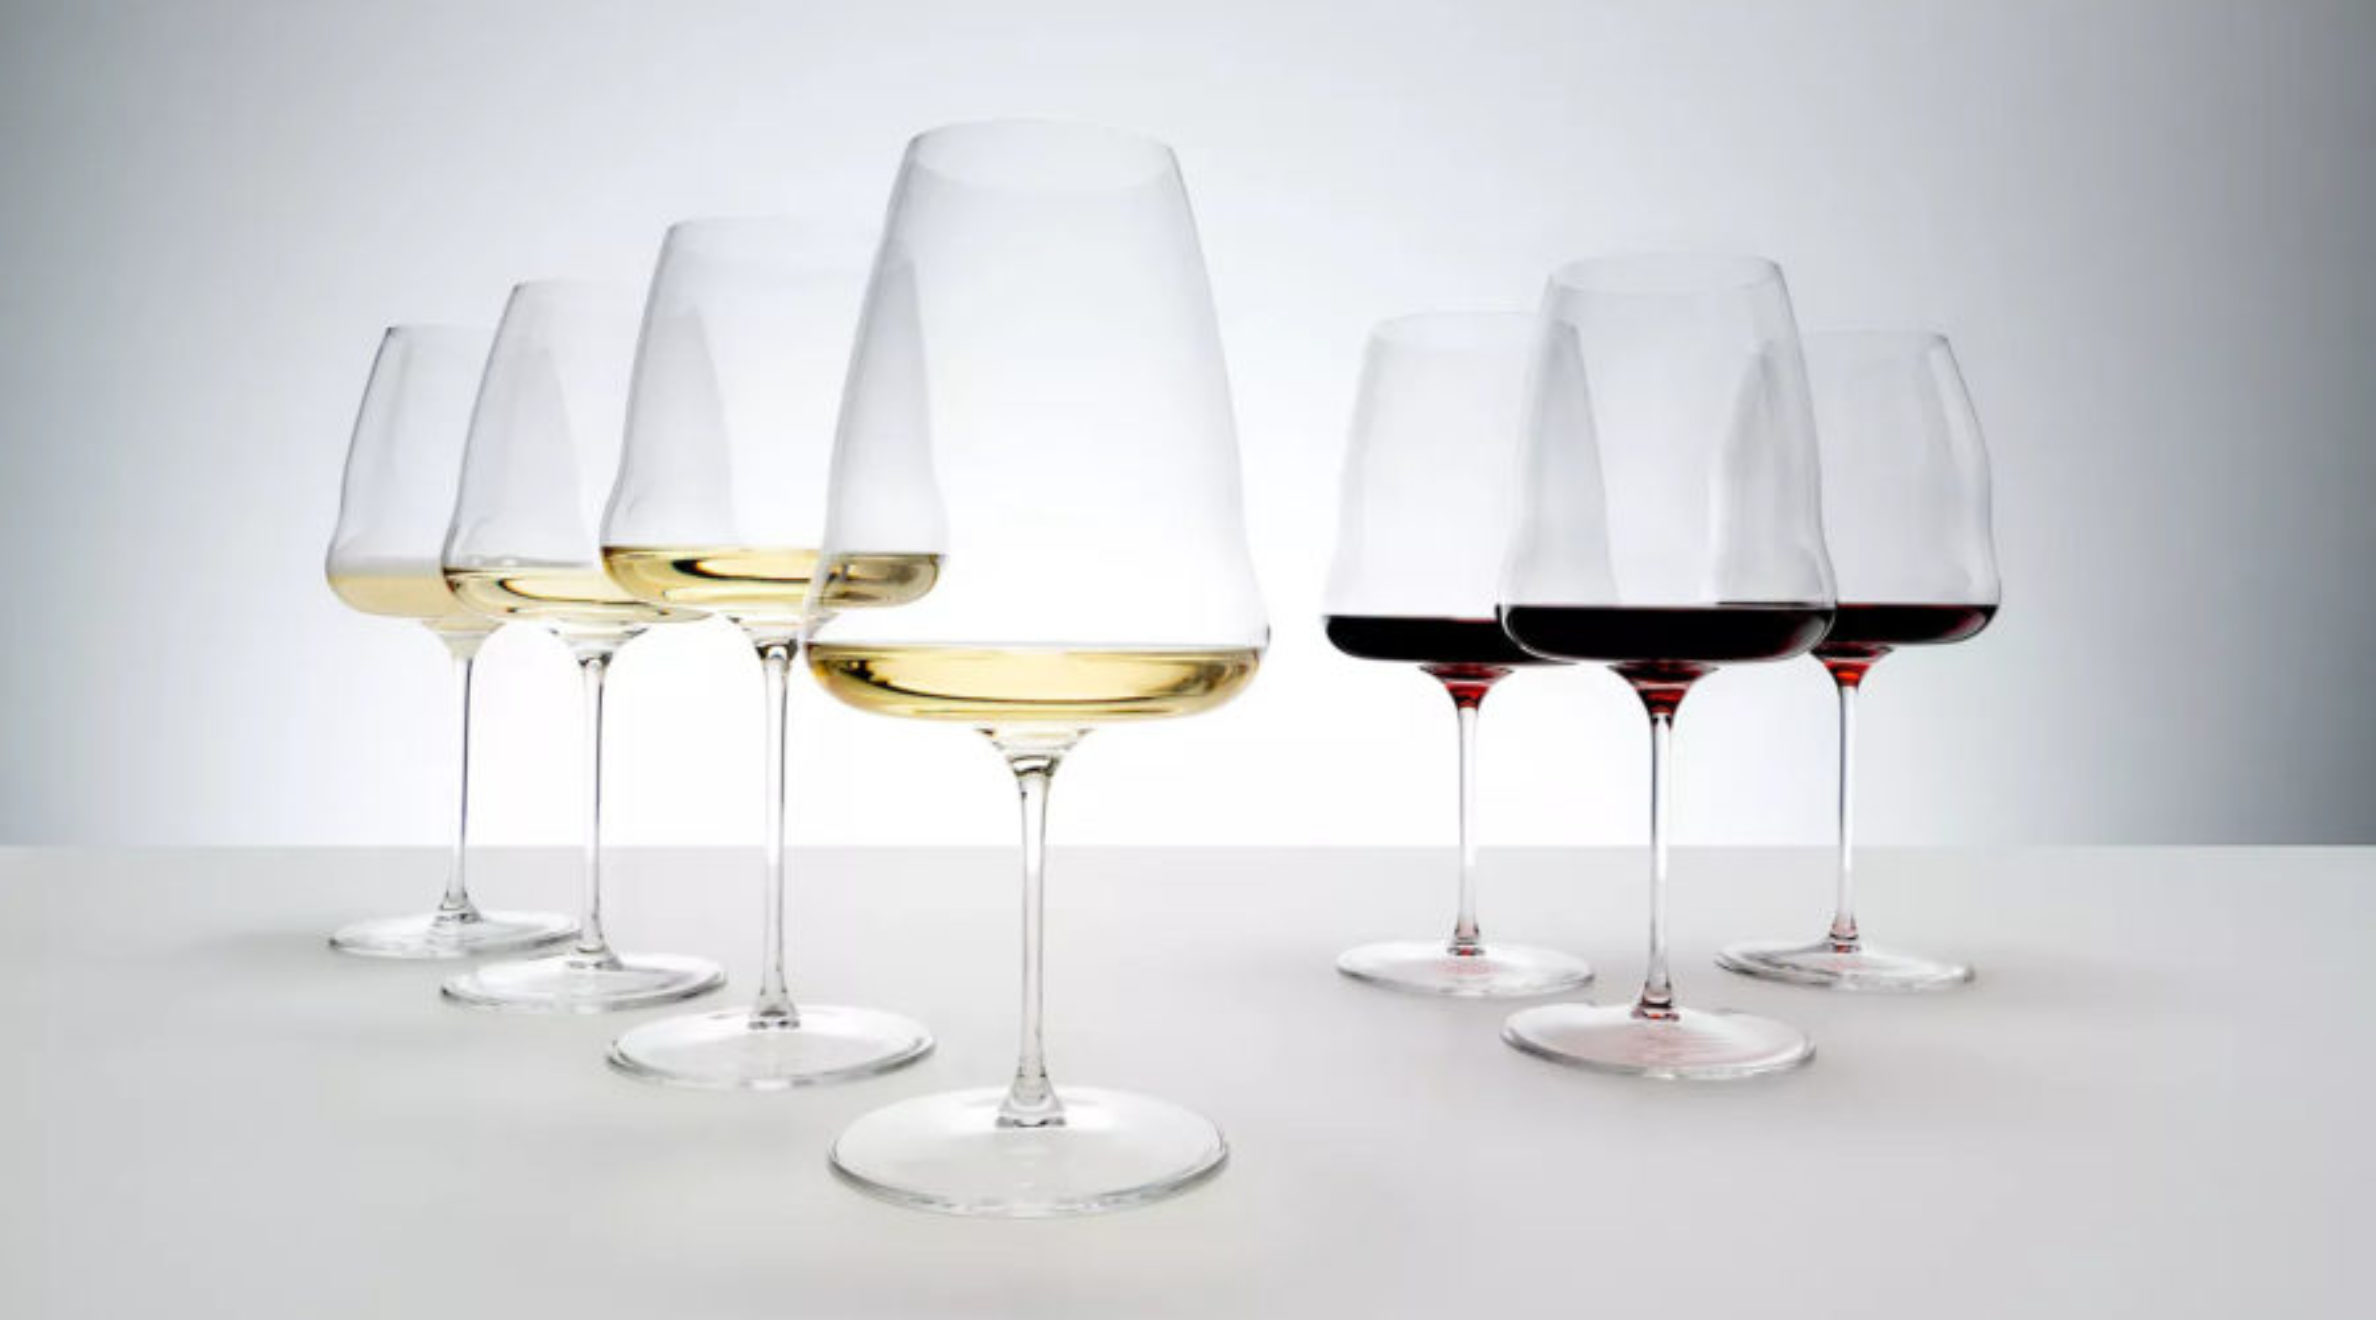 Riedel Winewings Wine Glasses